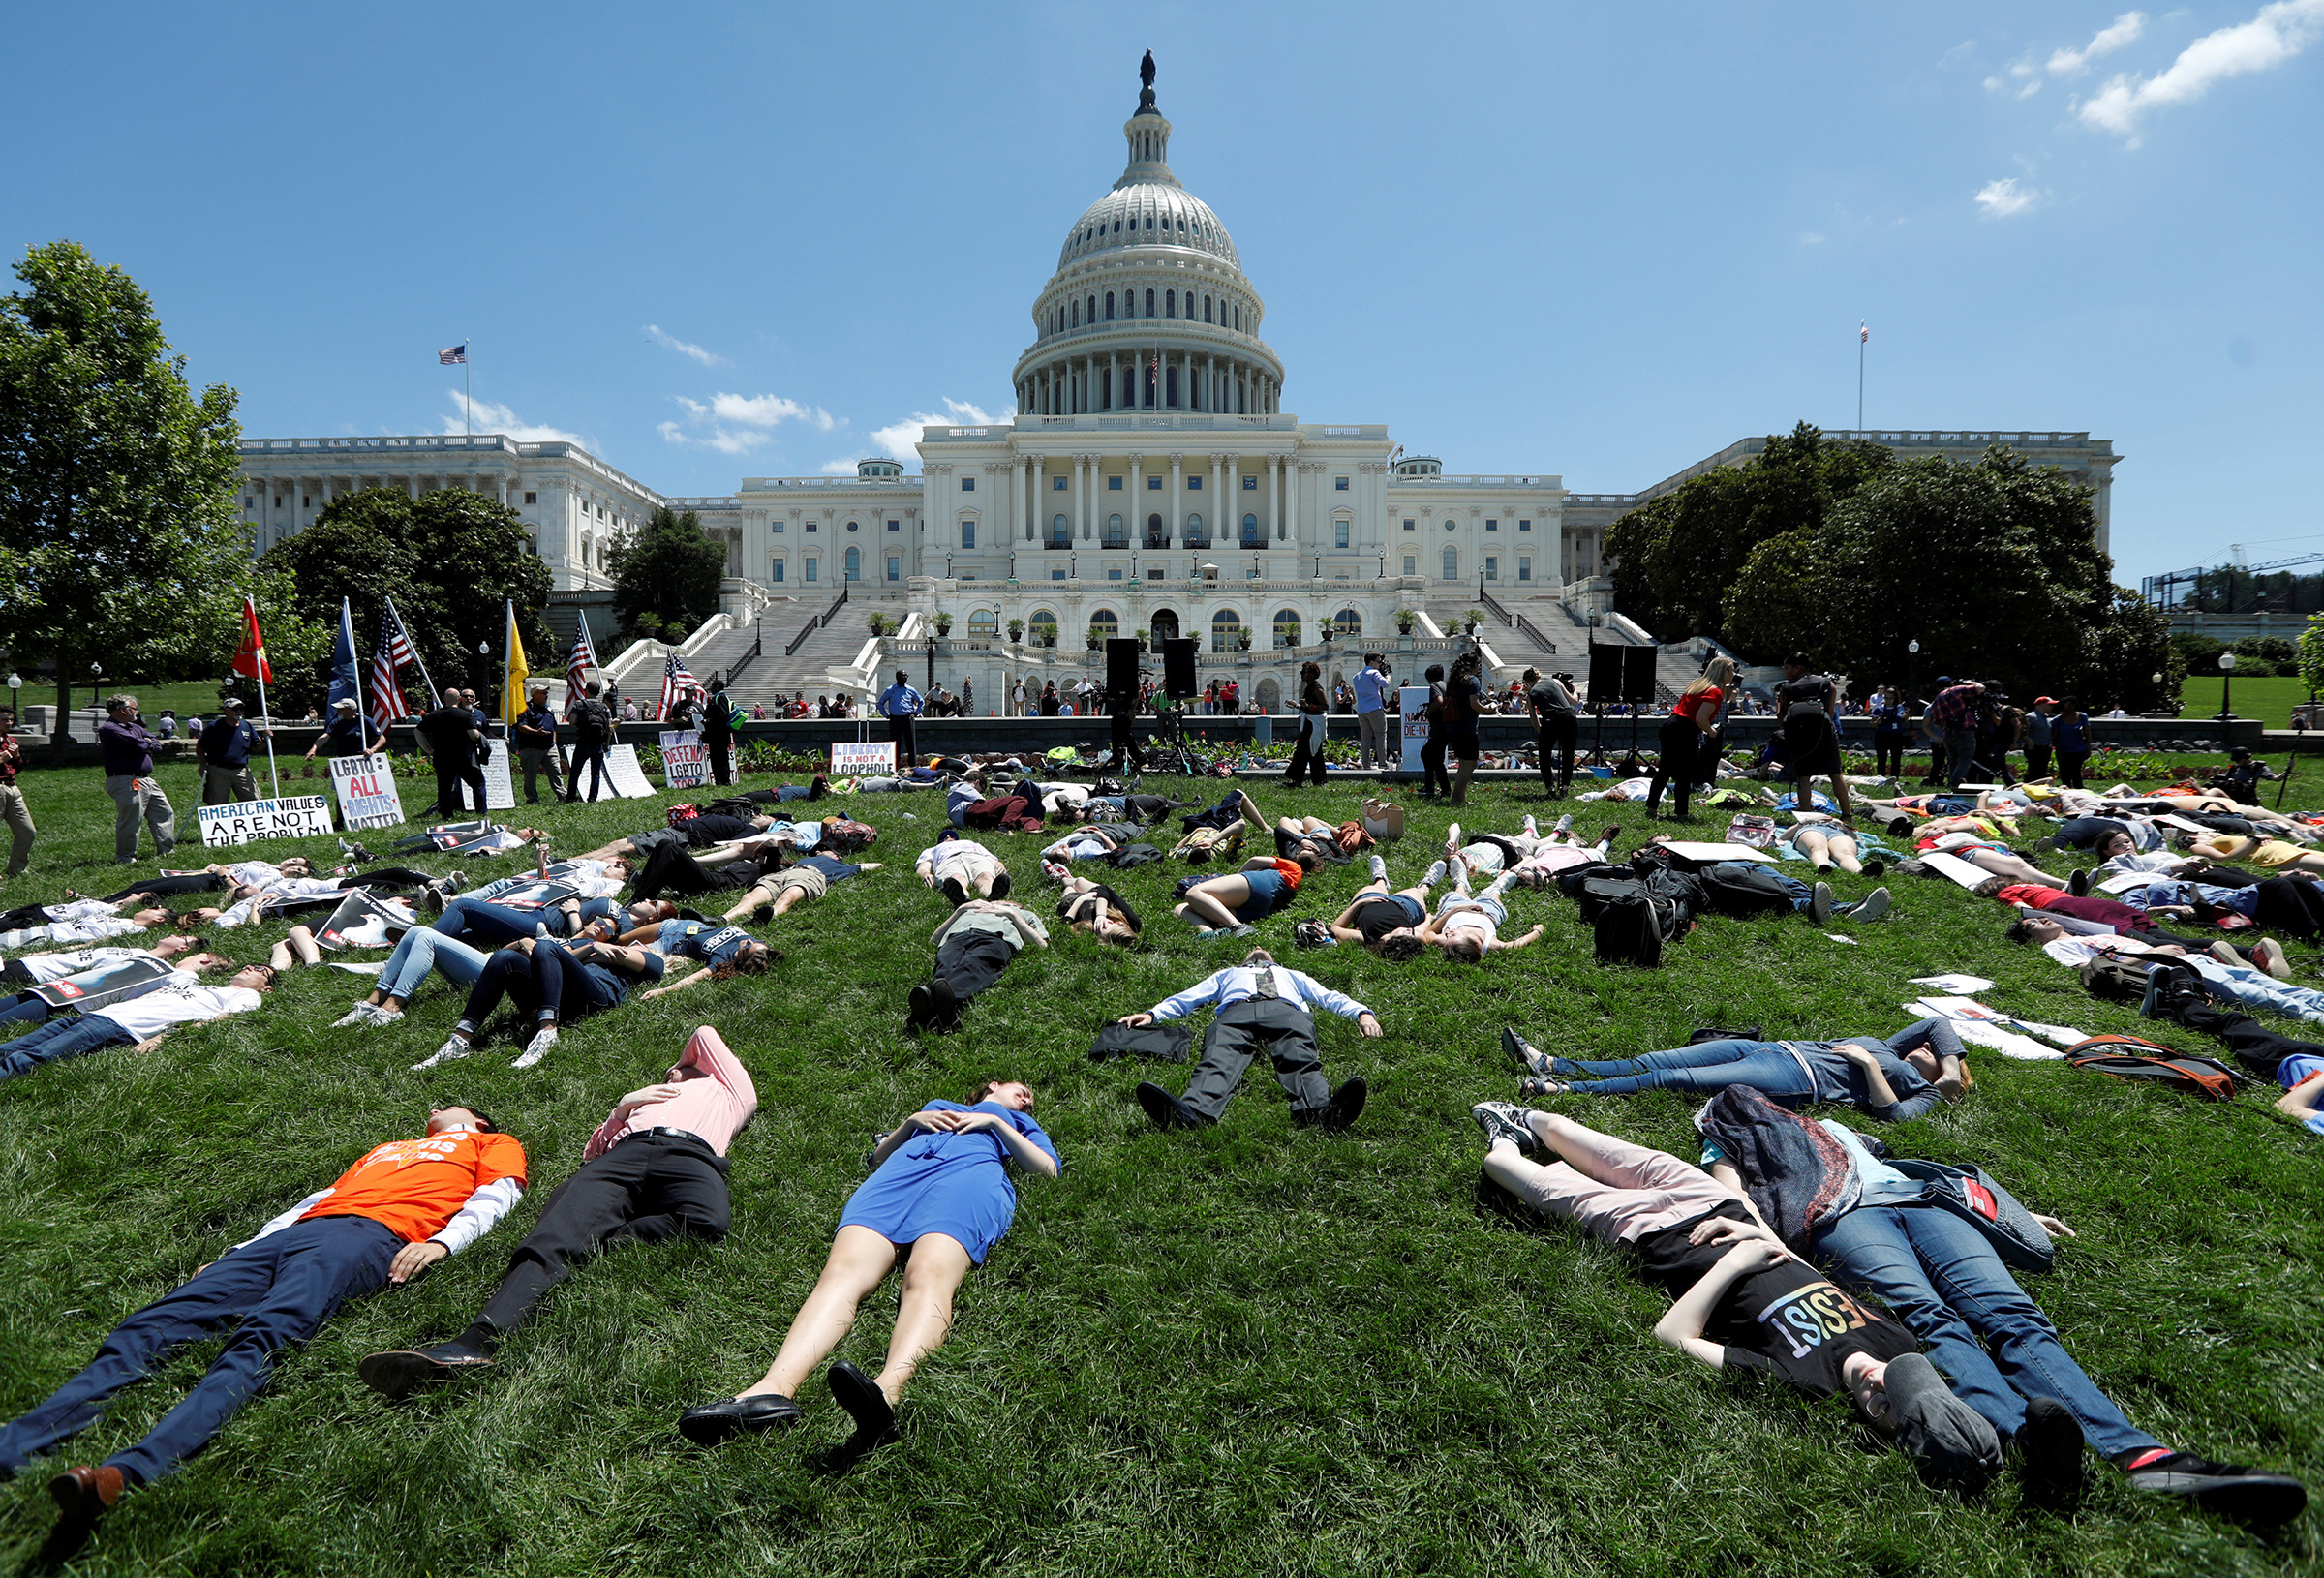 Activists mark the second anniversary of the Pulse Nightclub shooting where a gunman killed 49 people in Orlando with a die-in at the U.S. Capitol in Washington, U.S., June 12, 2018.